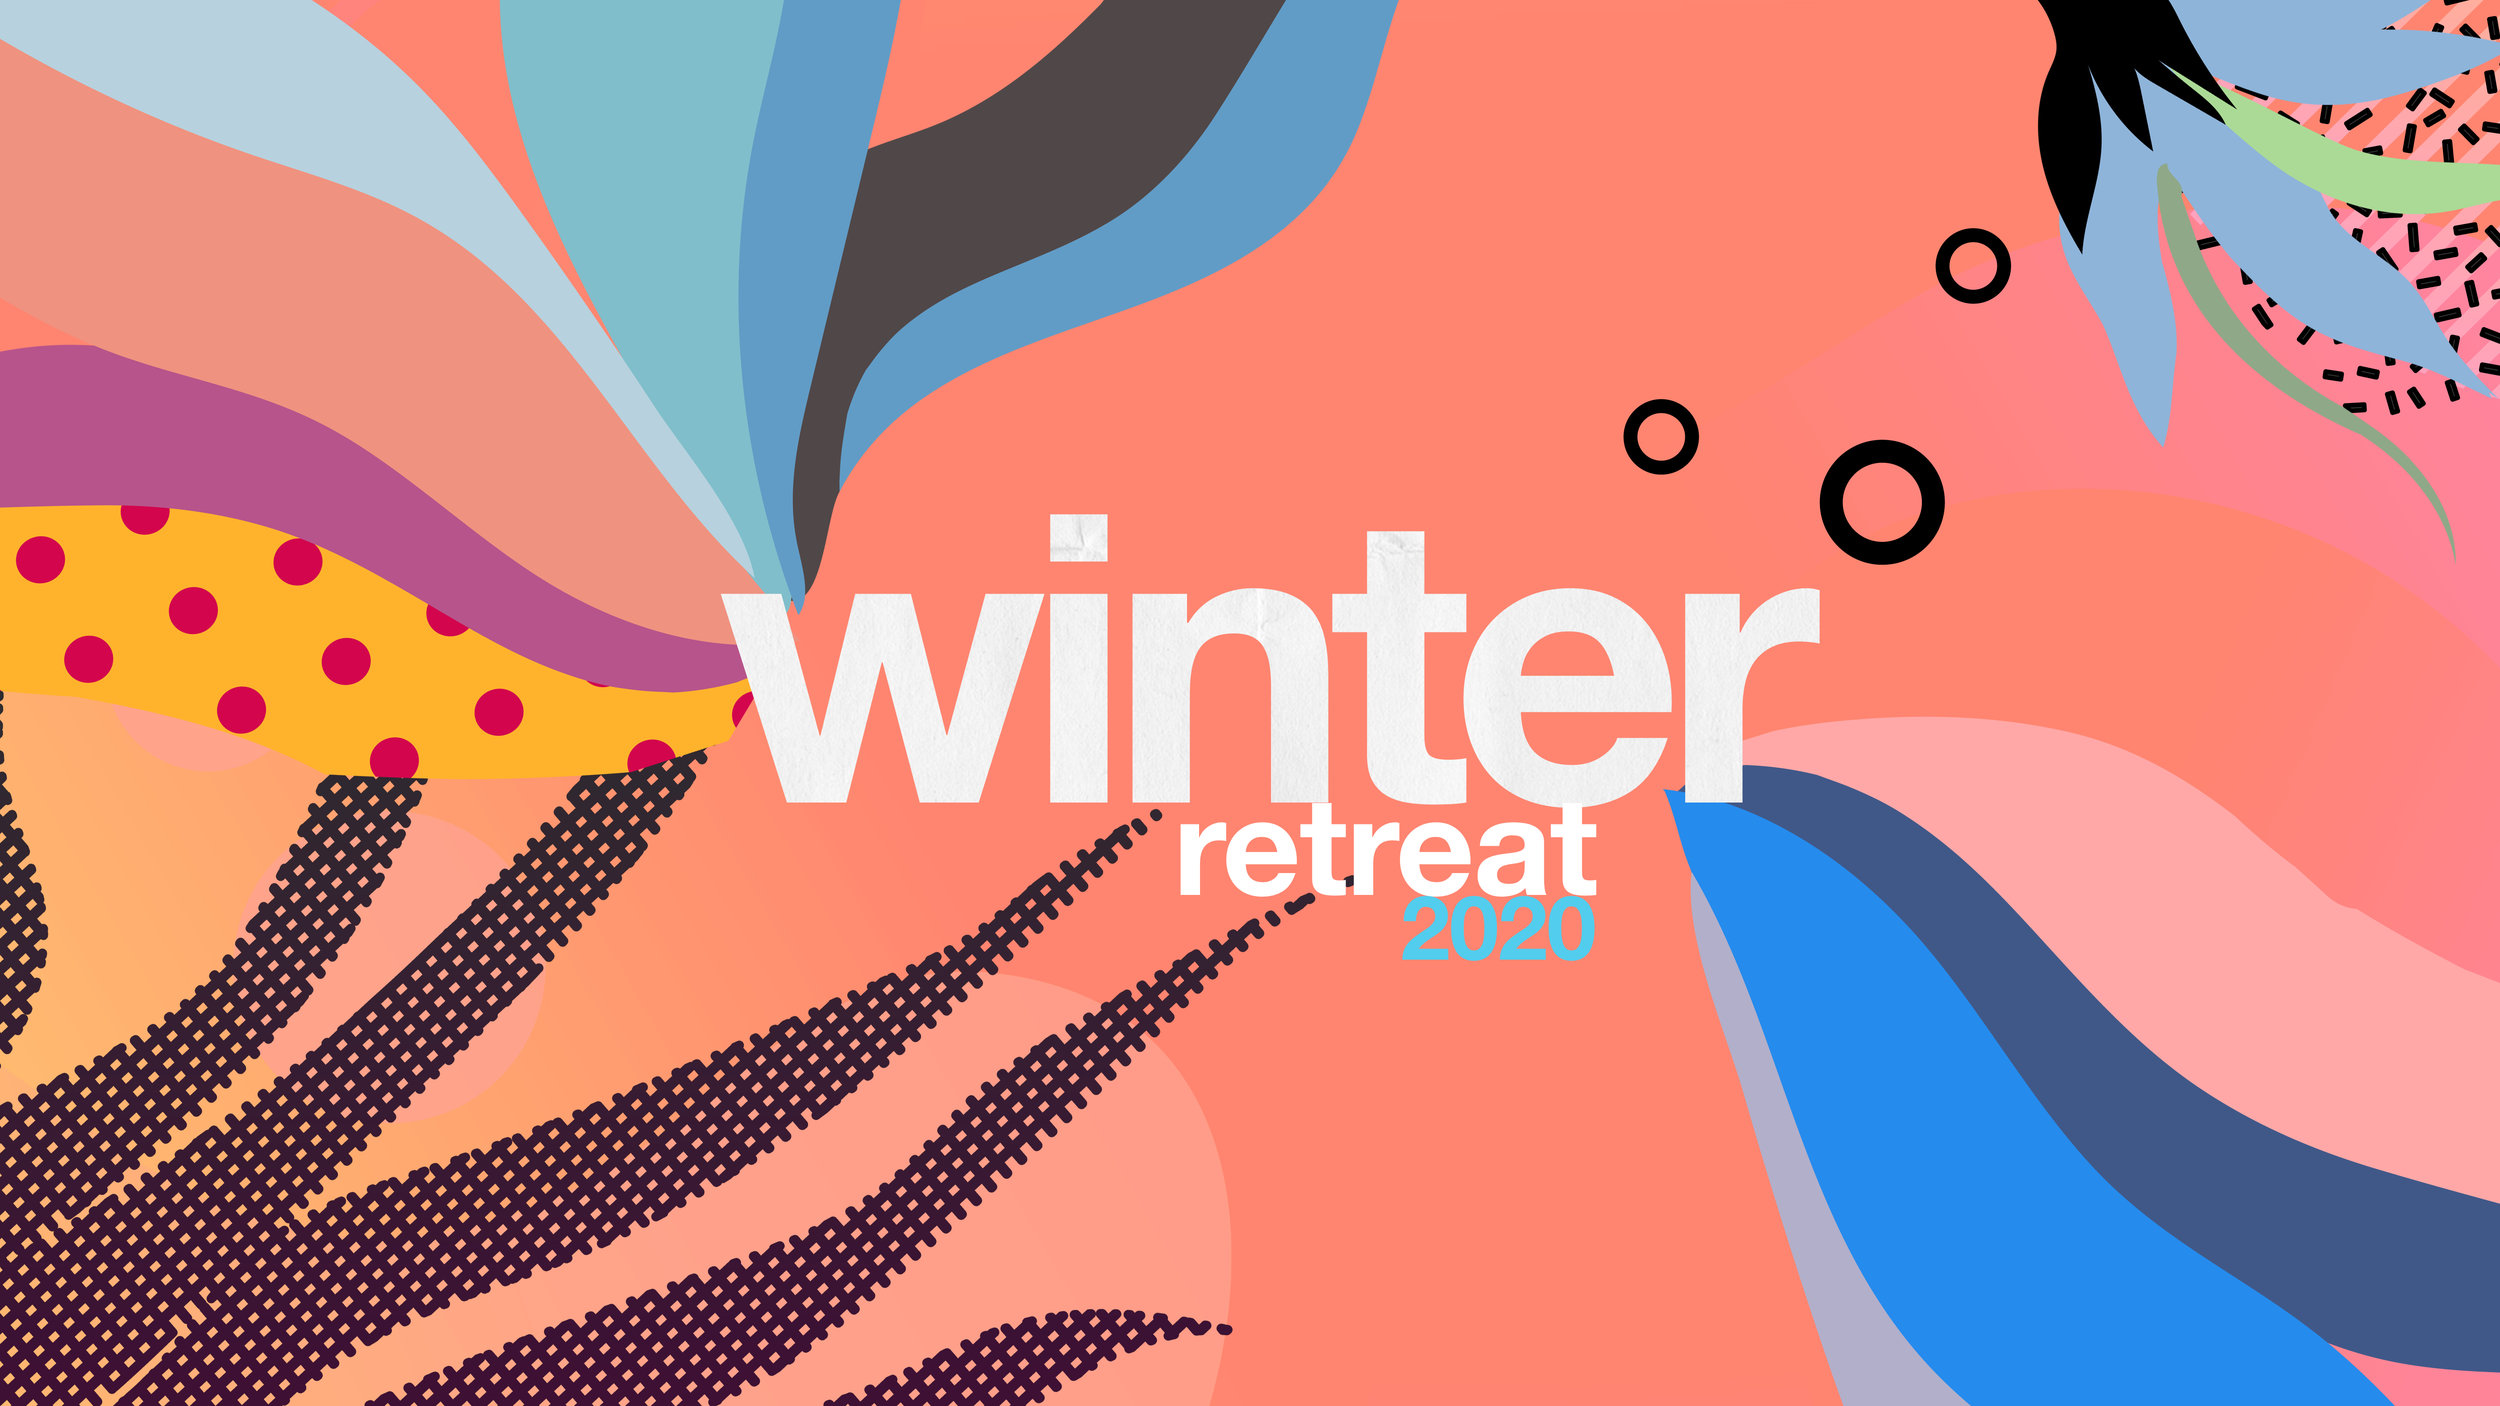 Winter Retreat 2020 Graphic.jpg